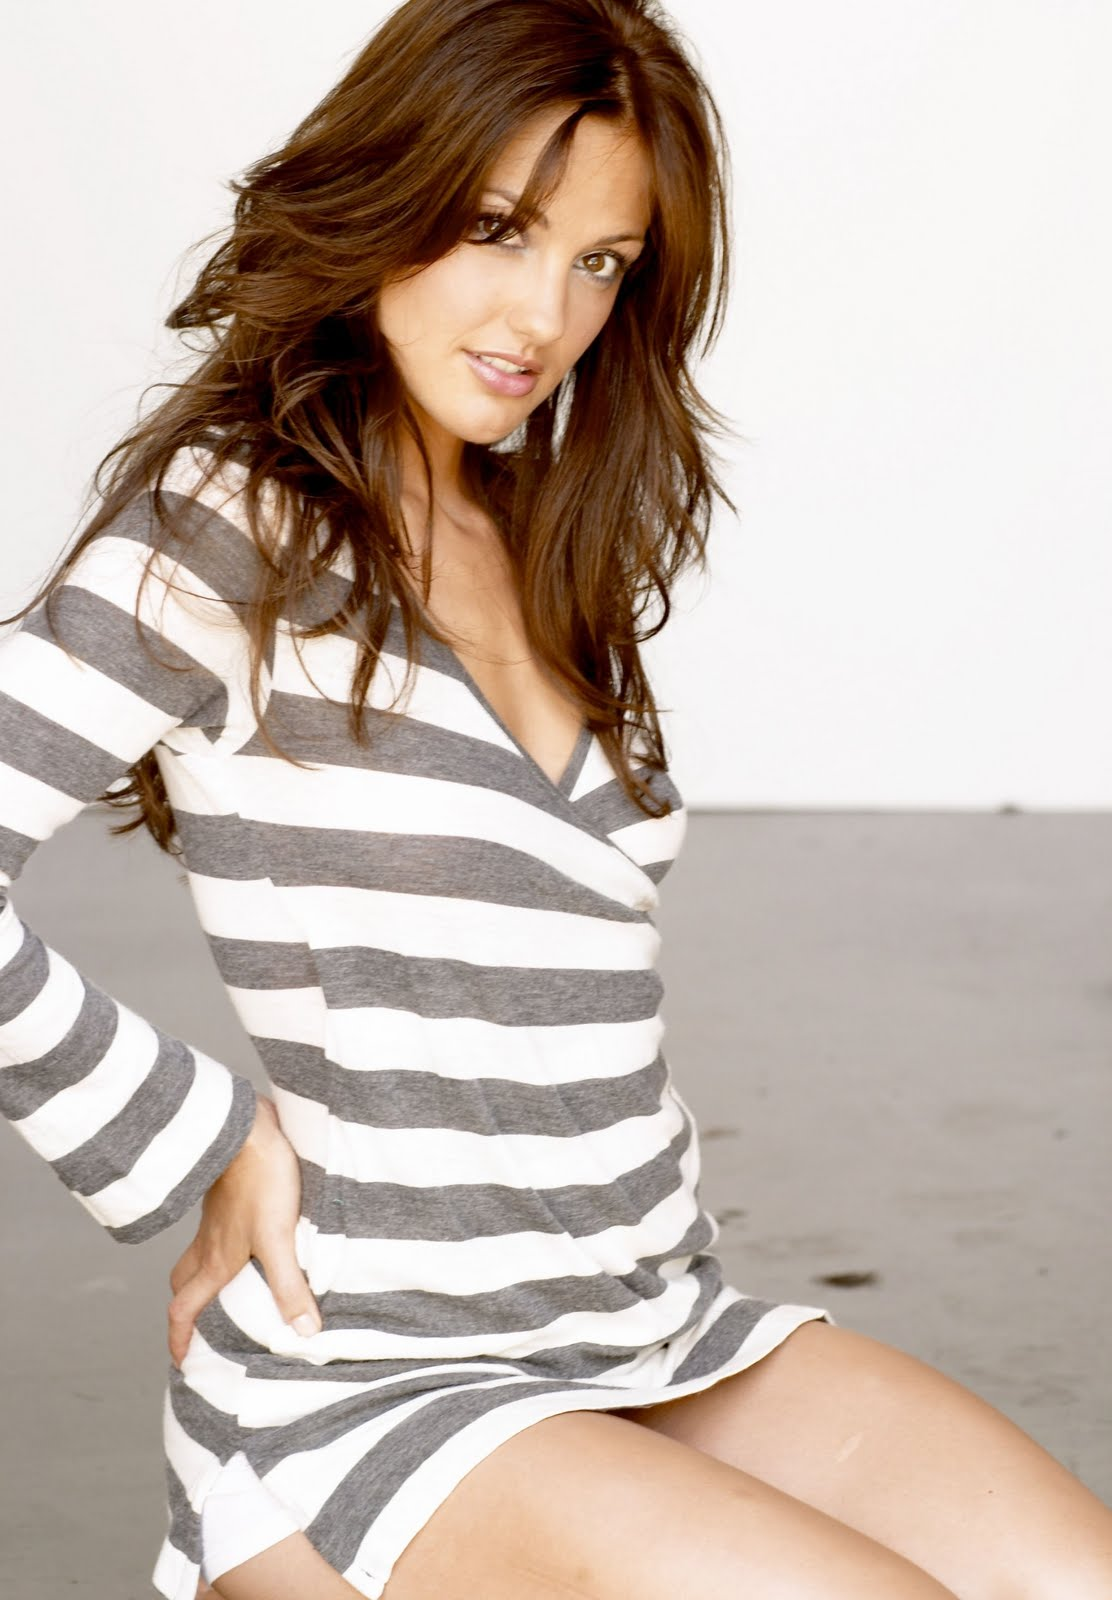 Jivebunnys Female Celebrity Picture Gallery: Minka Kelly ... Jennifer Aniston News